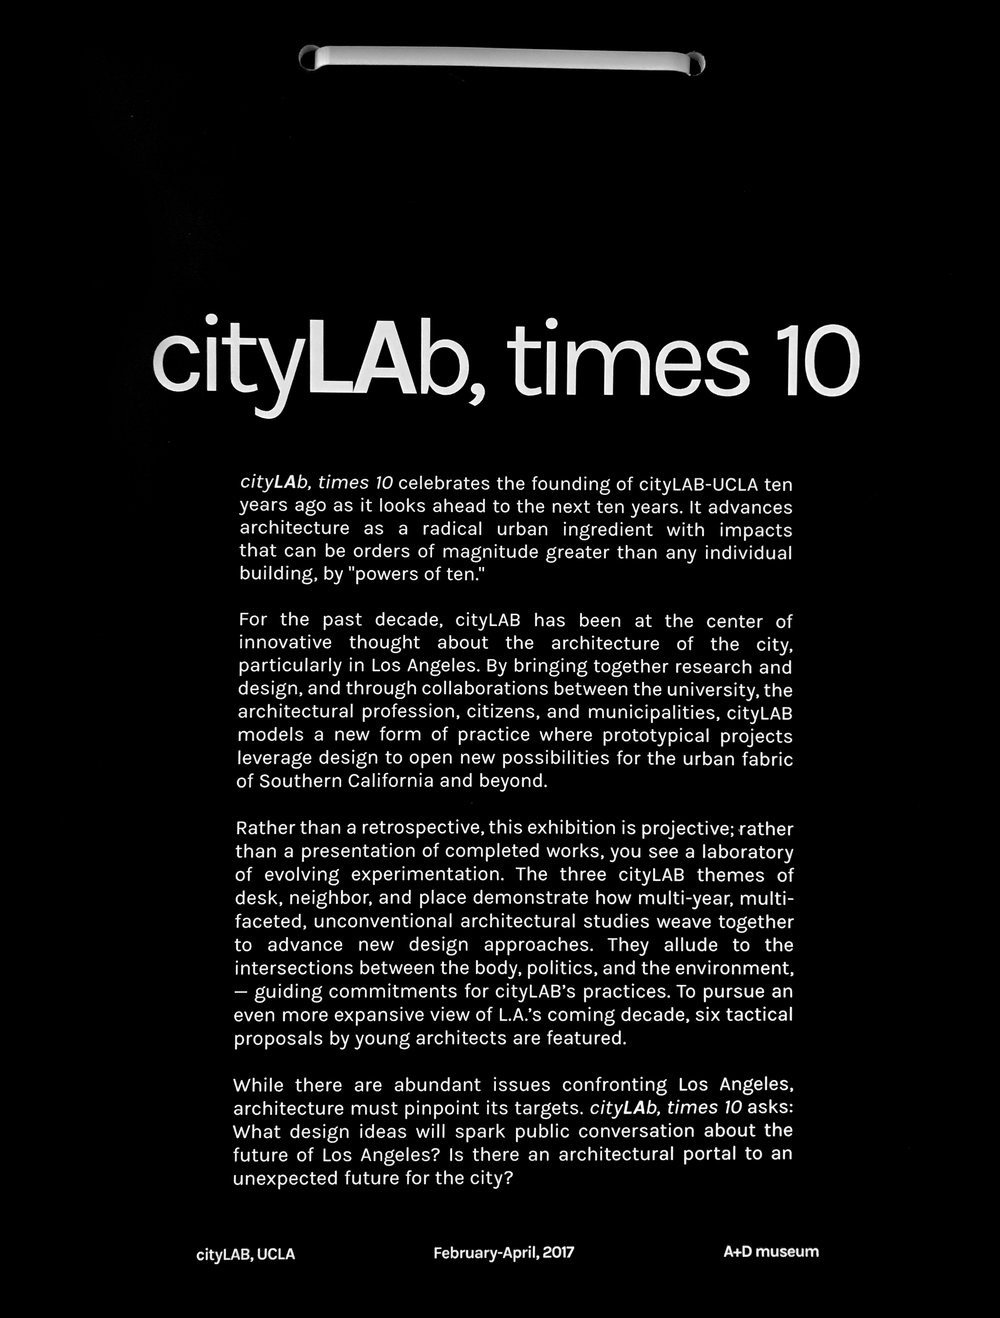 cityLAb, times 10_AN.ONYMOUS